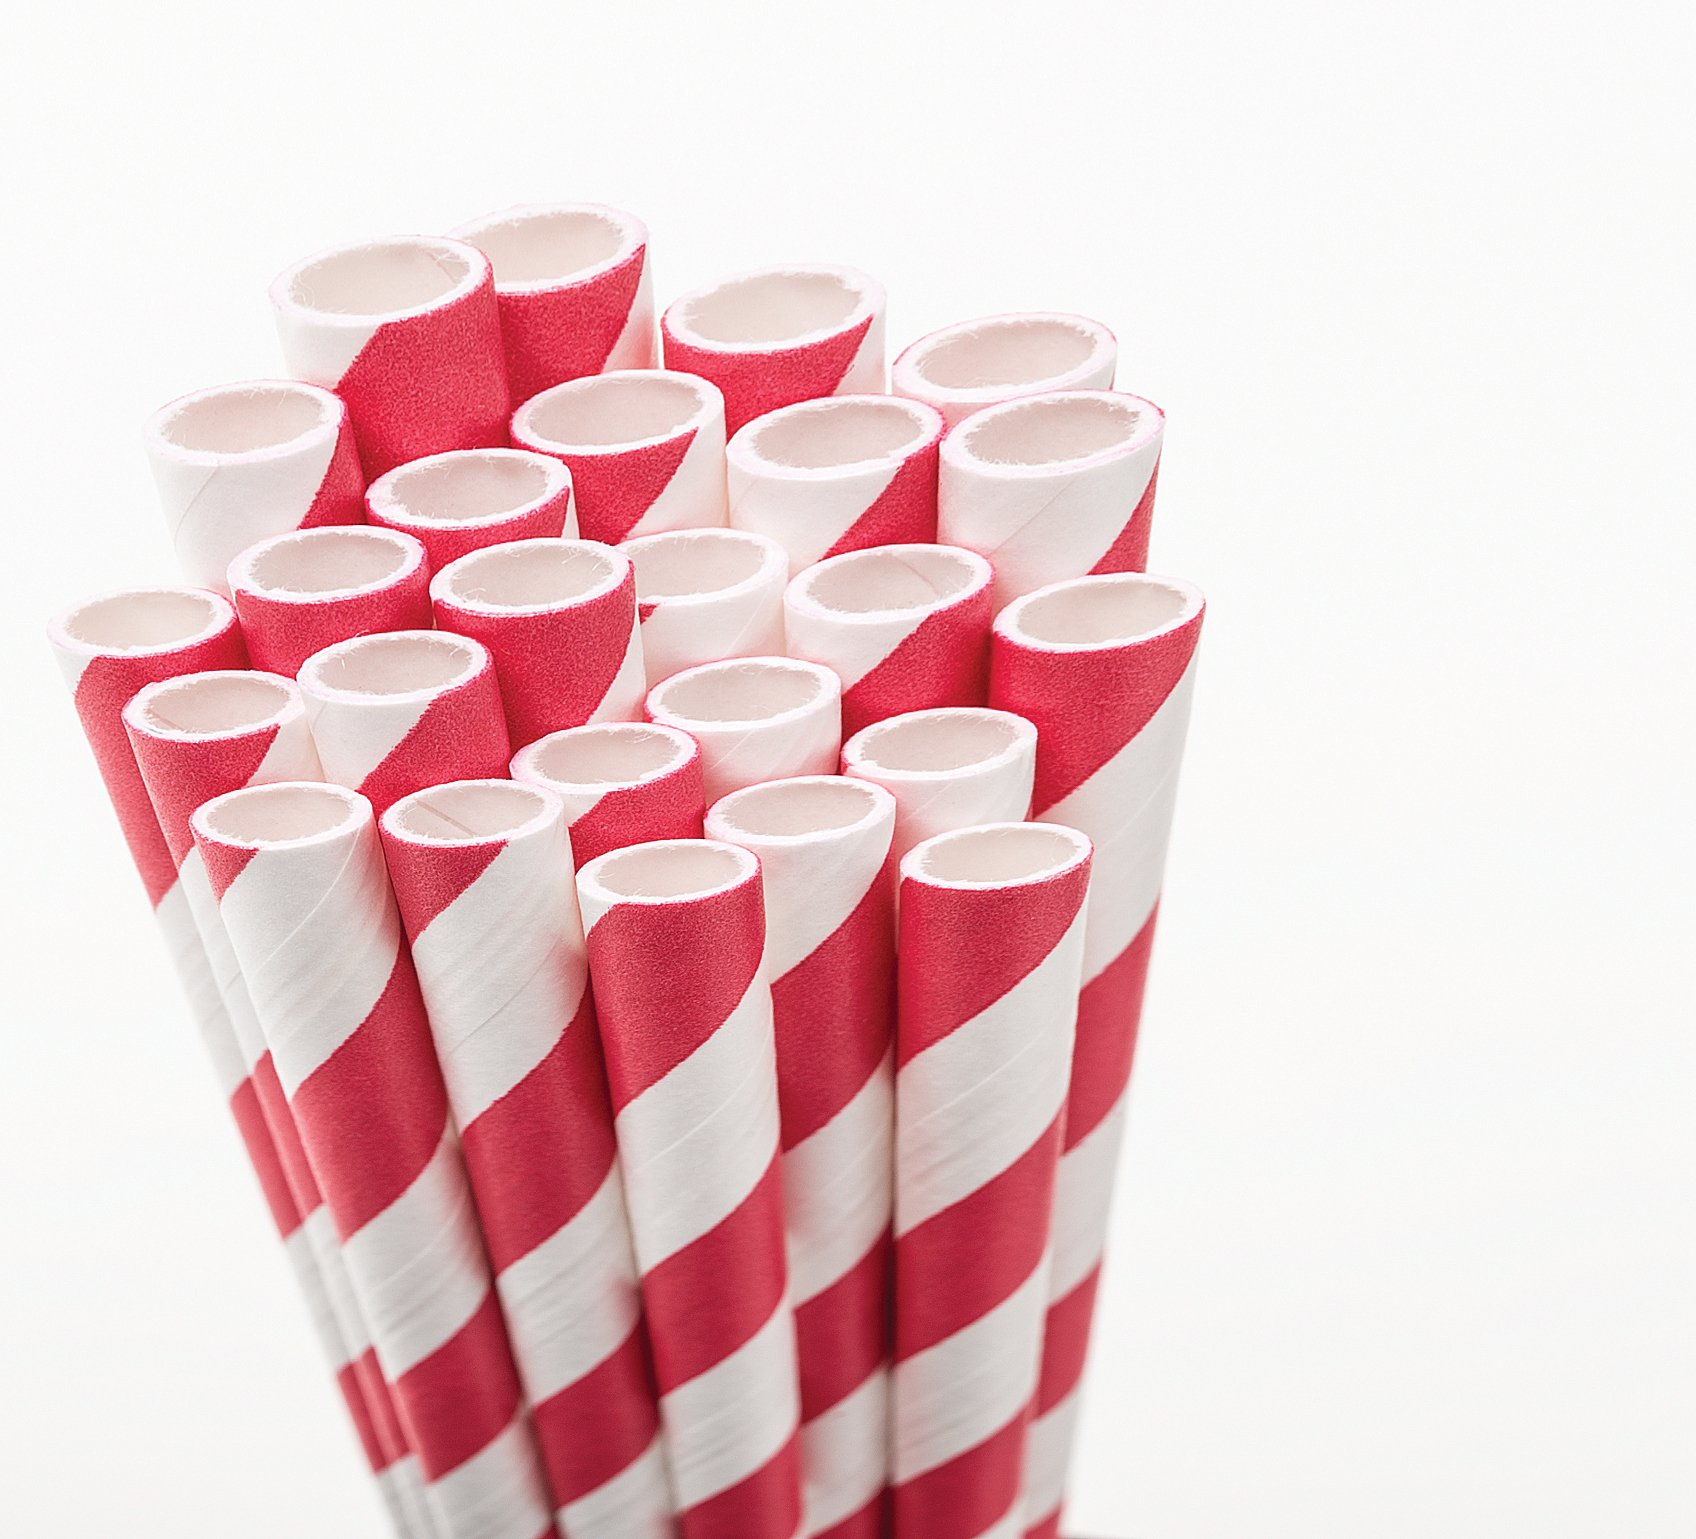 Aardvark 61520005 Paper Drinking Straw, 7/32'' Diameter x 7-3/4'' Length, Candy Apple Red Stripe (8 Boxes of 600) by Aardvark Straws